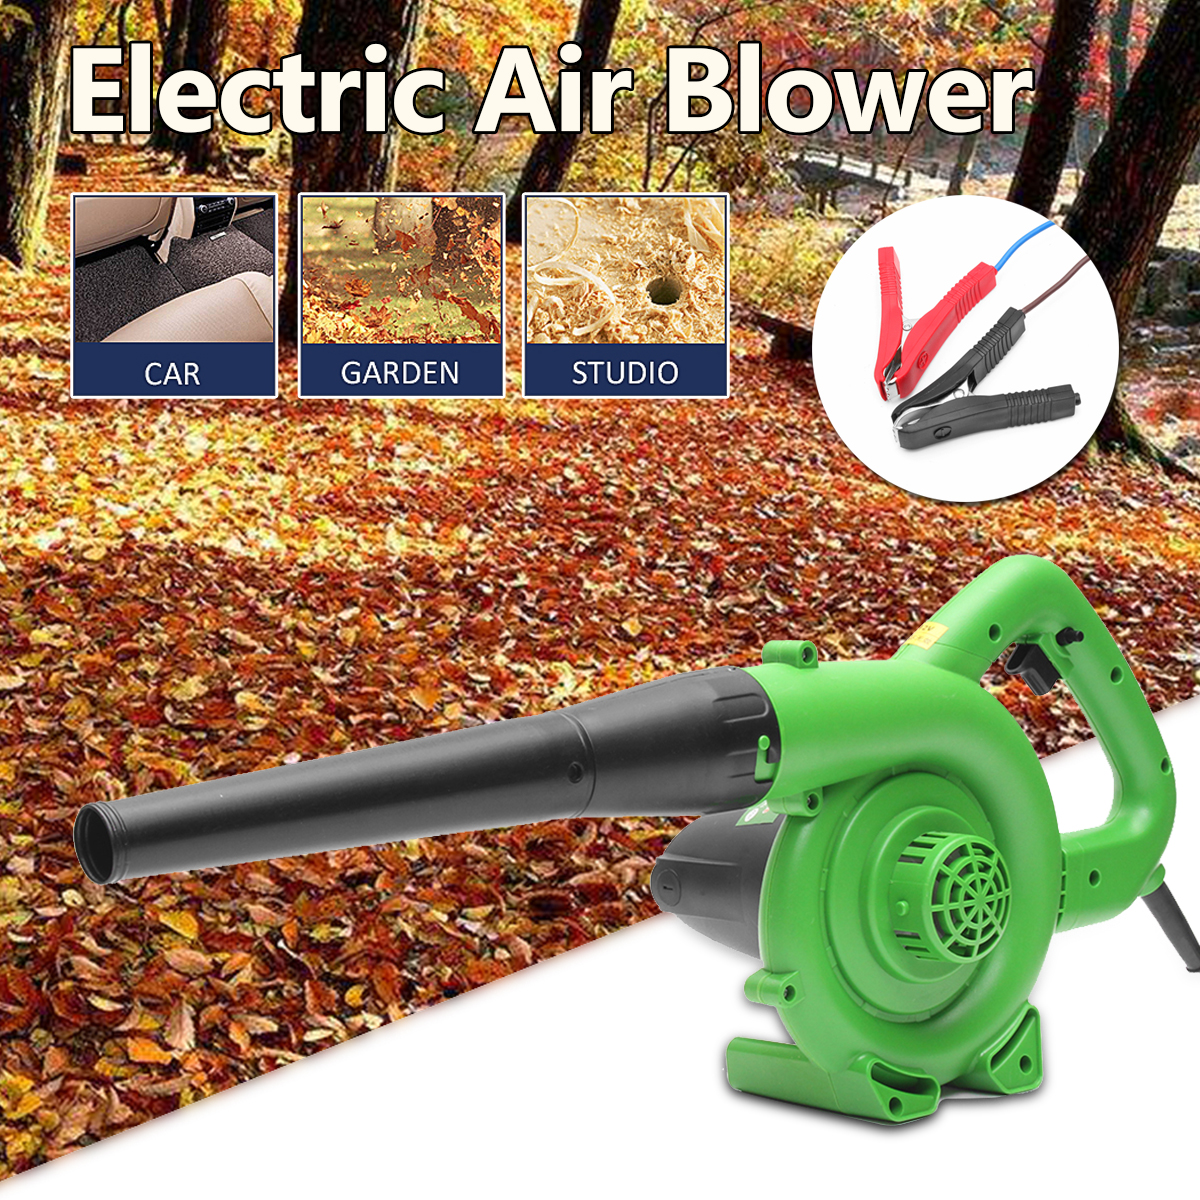 600/1200W Portable Multi-Tools Electric Air Blower Handheld Garden Leaf Collector Car Computer Cleaner Dust Air Blowing Cleaner air filter fits zenoah model eb700 new air cleaner cheap leaf blower parts